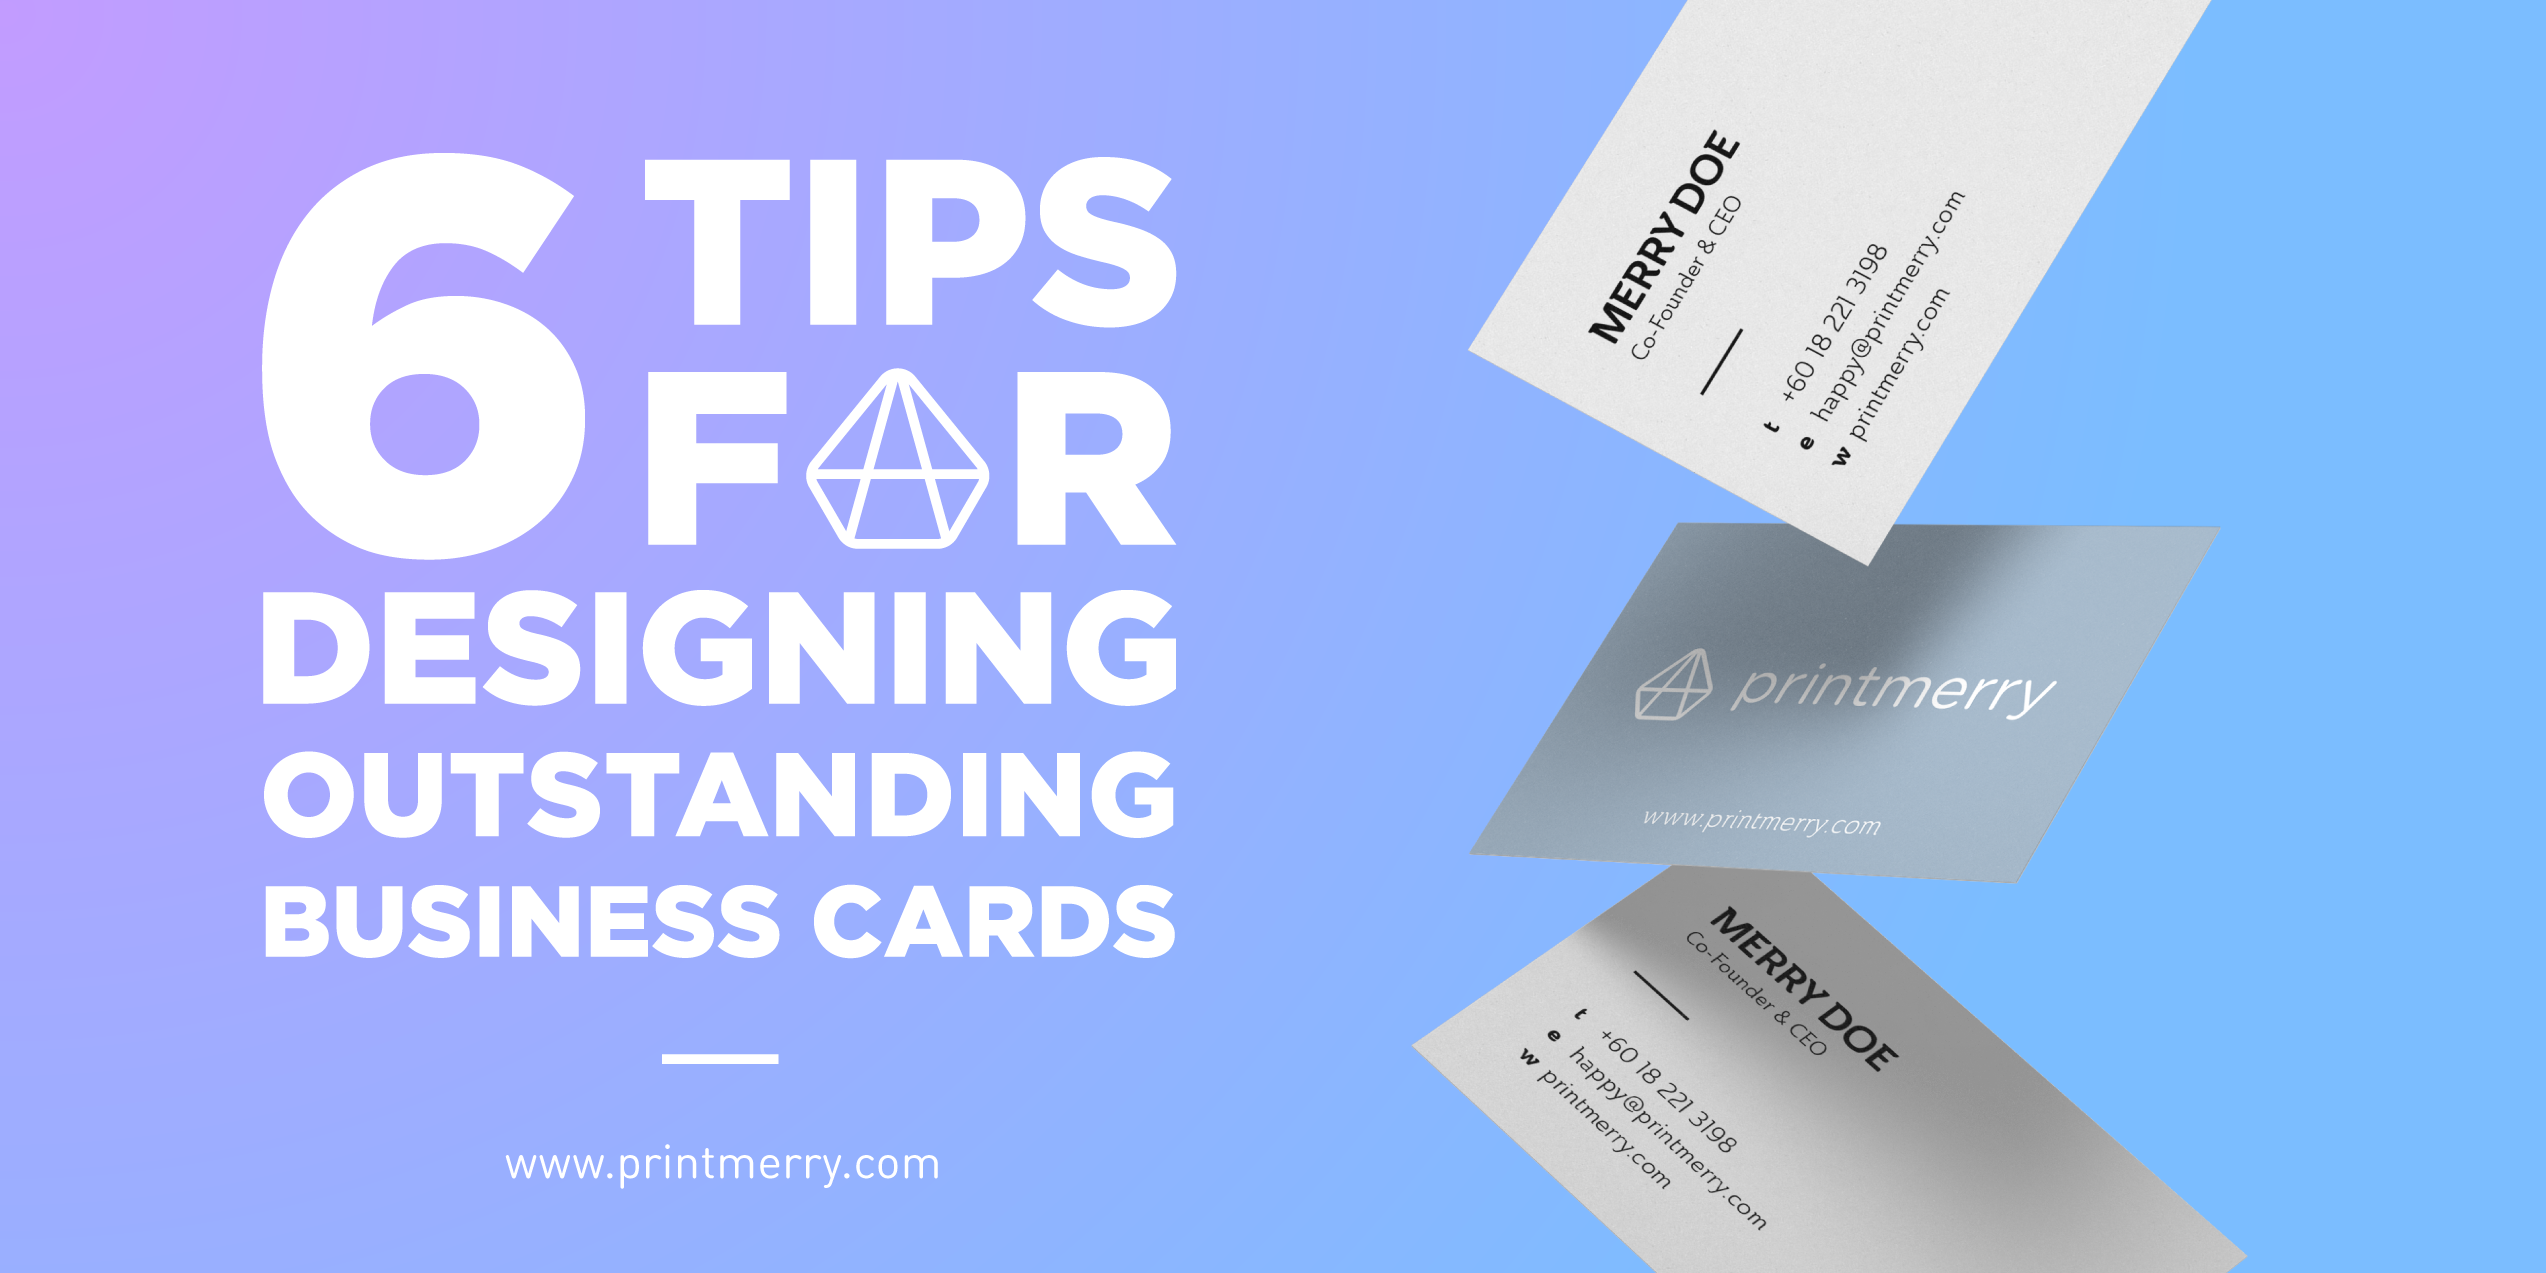 6 Tips For Designing Outstanding Business Cards